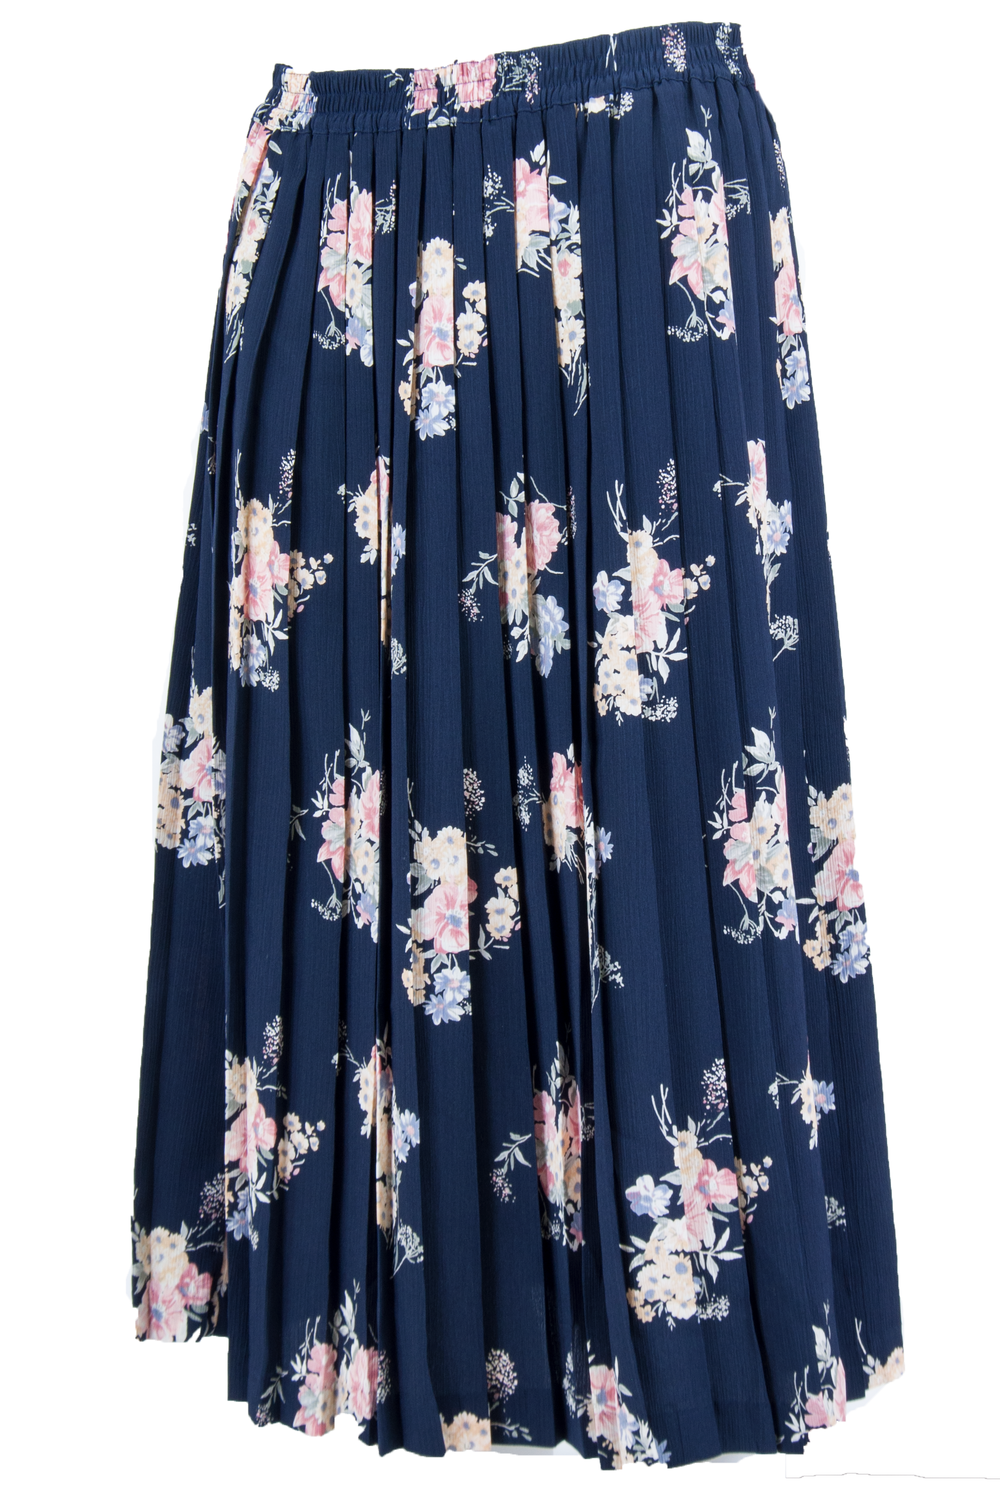 flower printed maxi skirt in navy blue with pleats